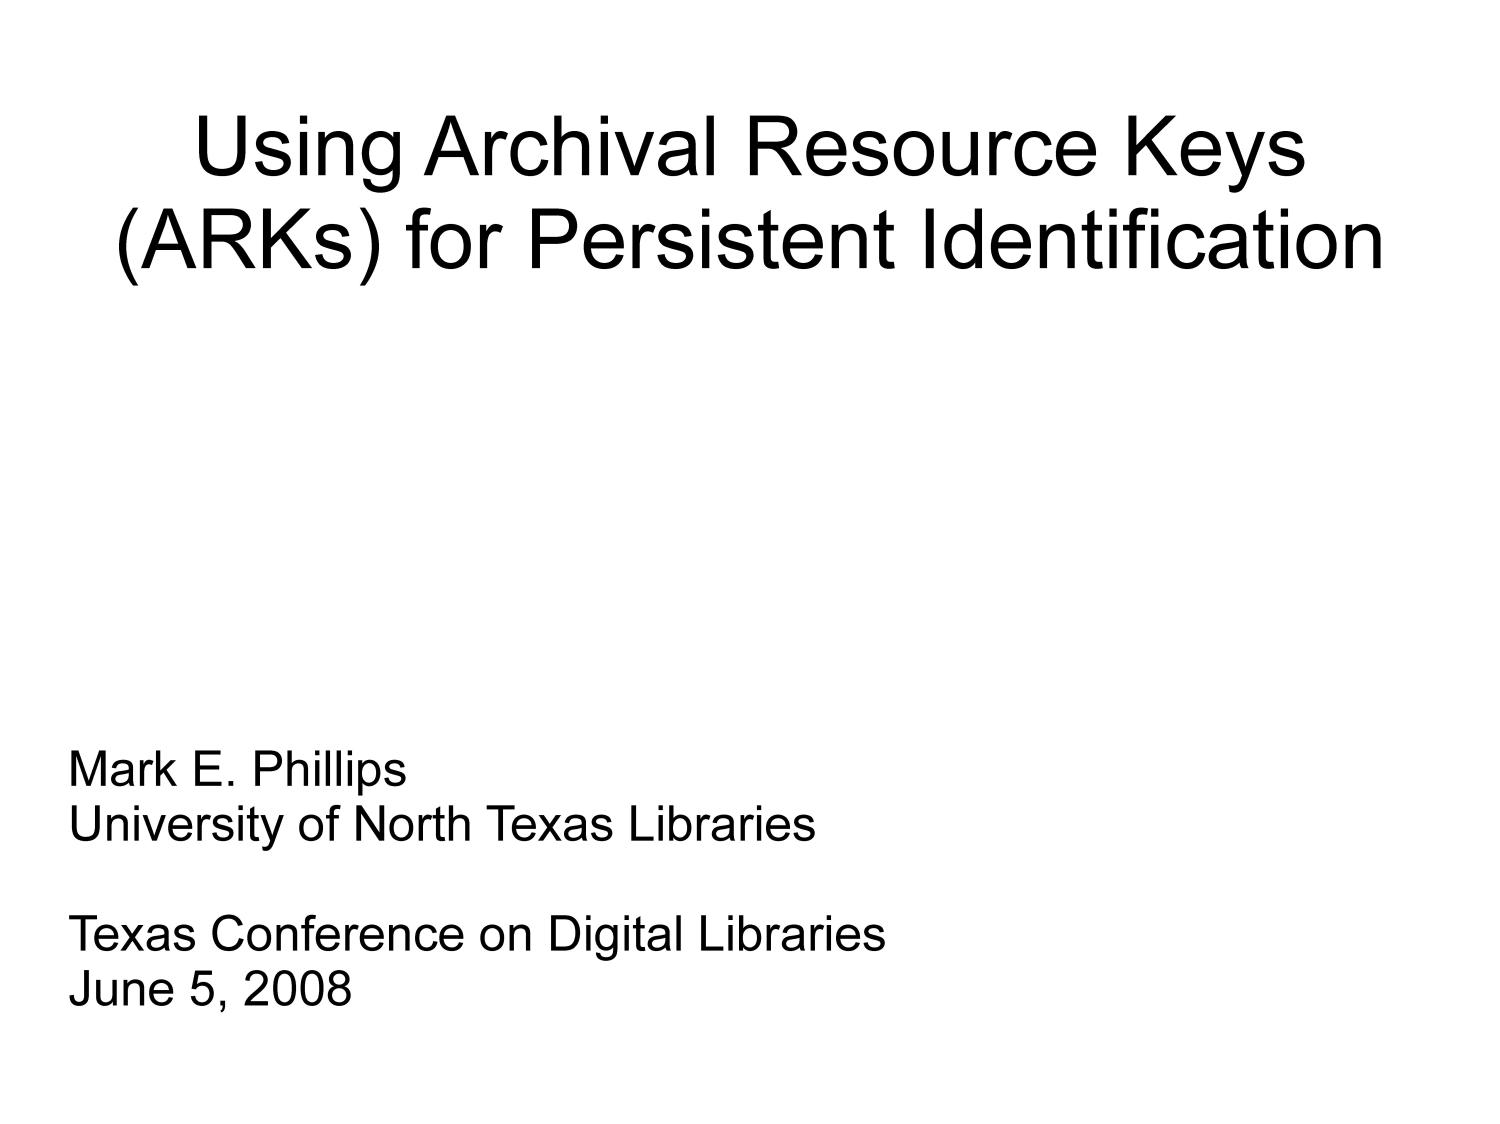 Using Archival Resource Keys (ARKs) for Persistent Identification                                                                                                      [Sequence #]: 1 of 20